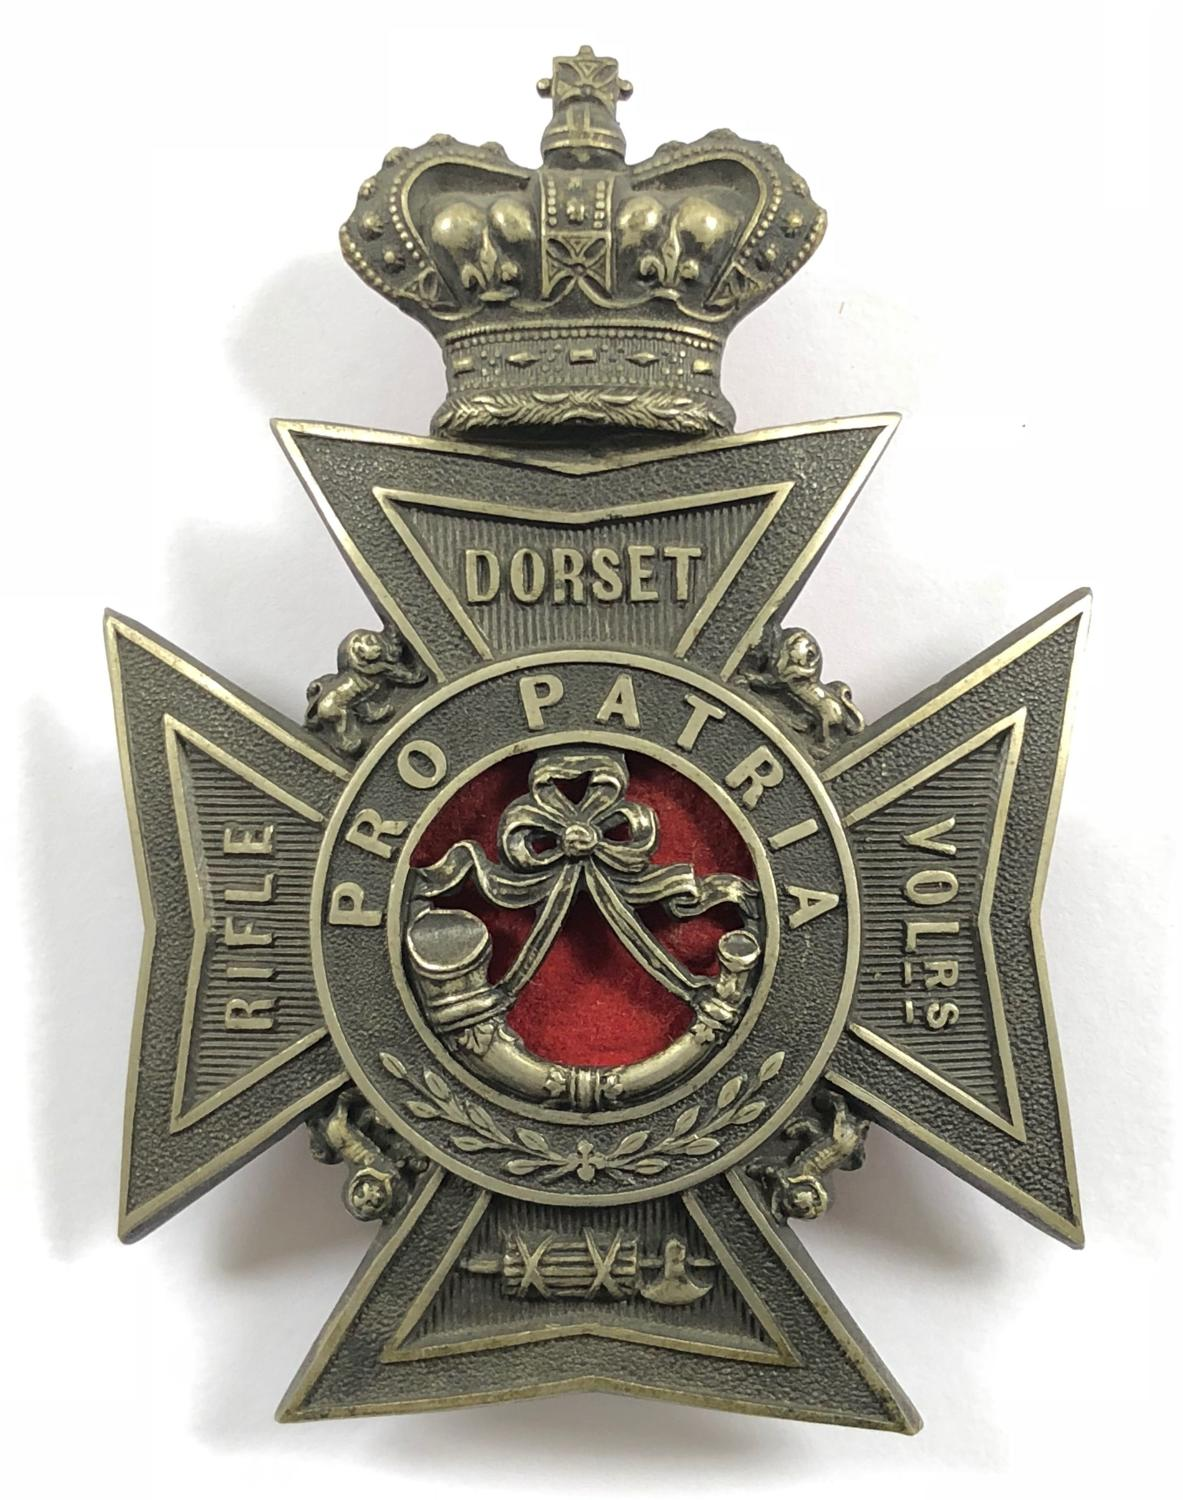 Dorset Rifle Volunteers Victorian Officer's helmet plate